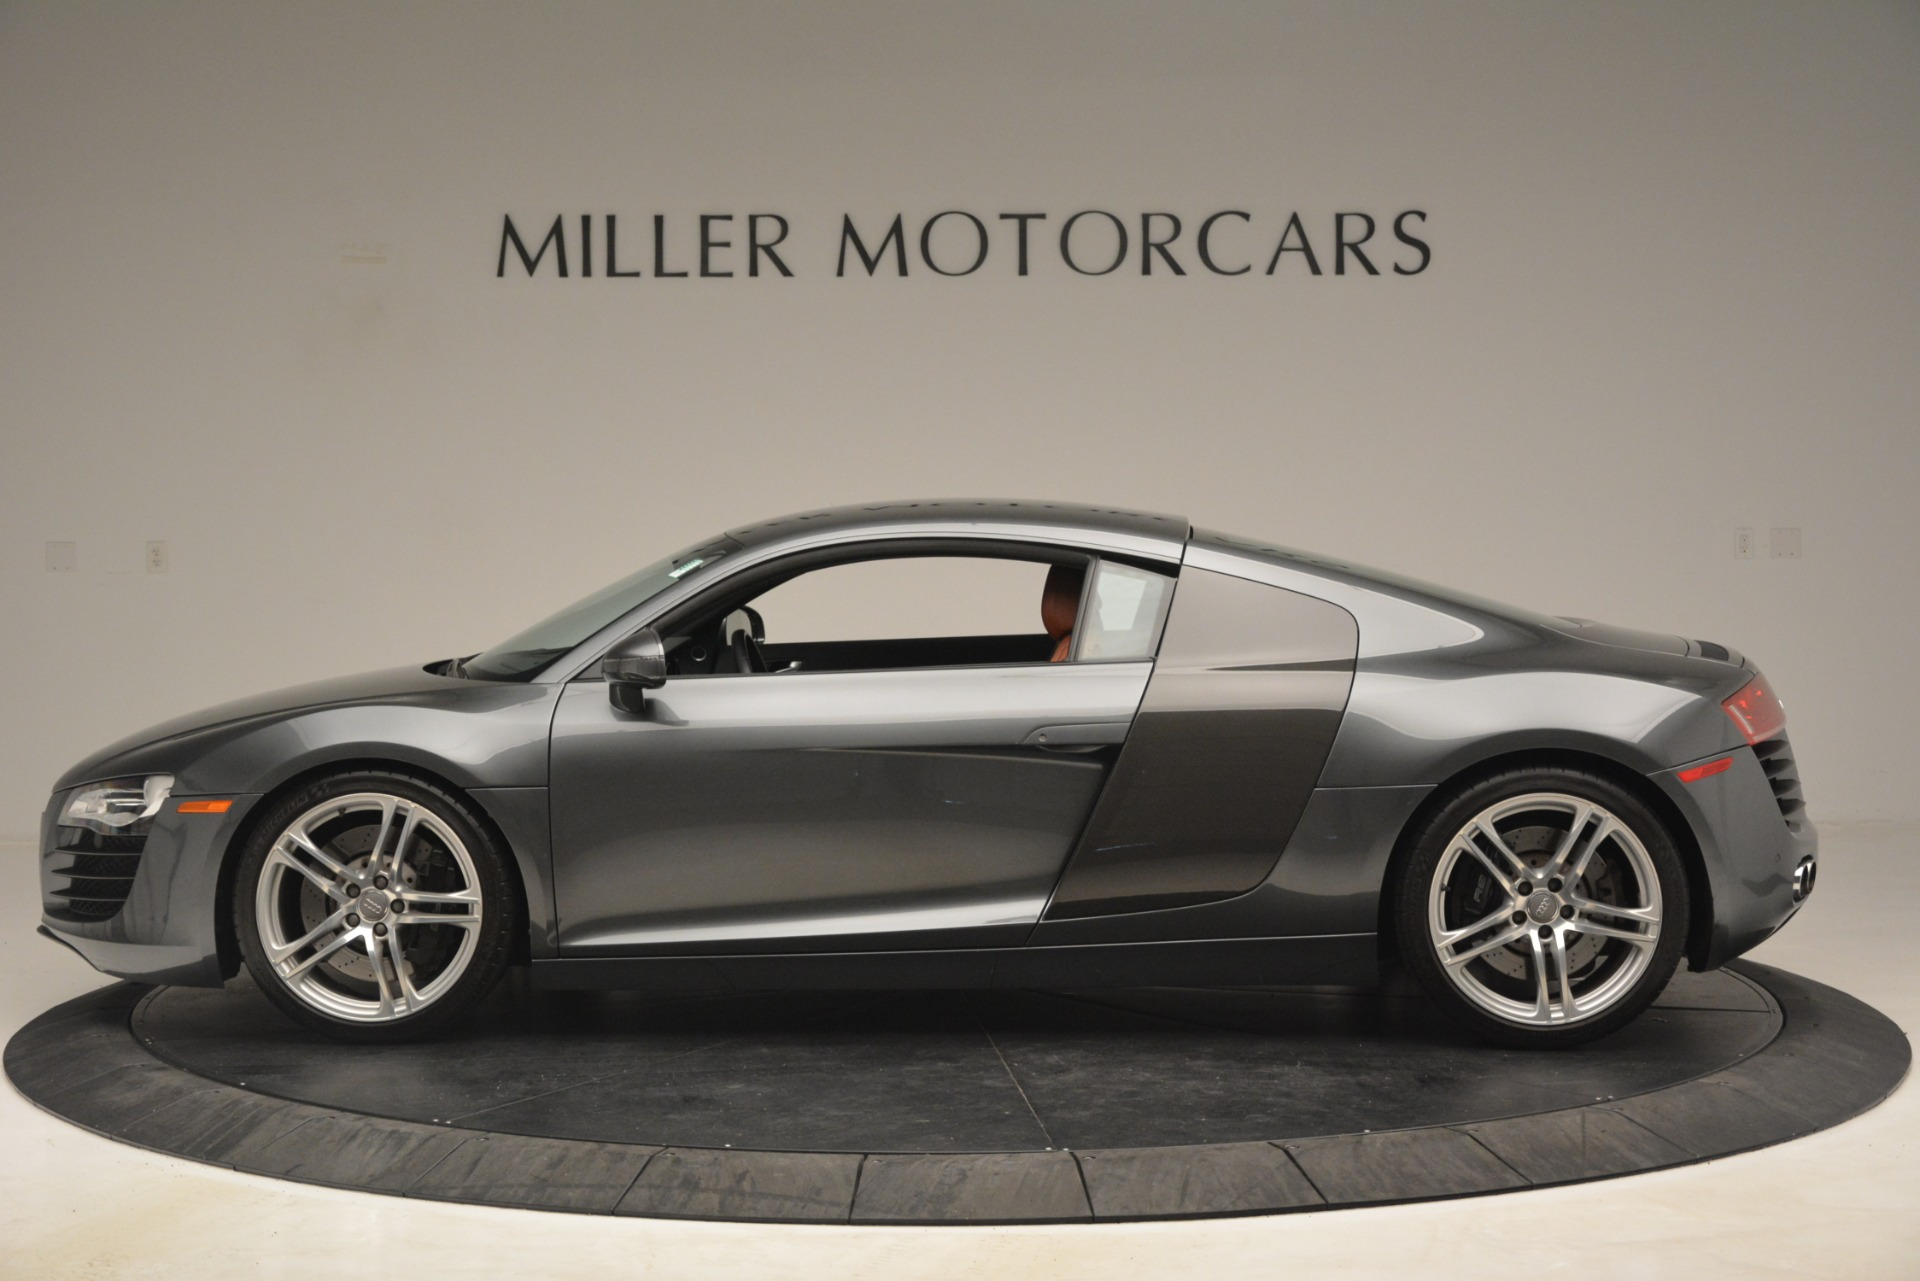 Used 2009 Audi R8 quattro For Sale In Greenwich, CT 3228_p3